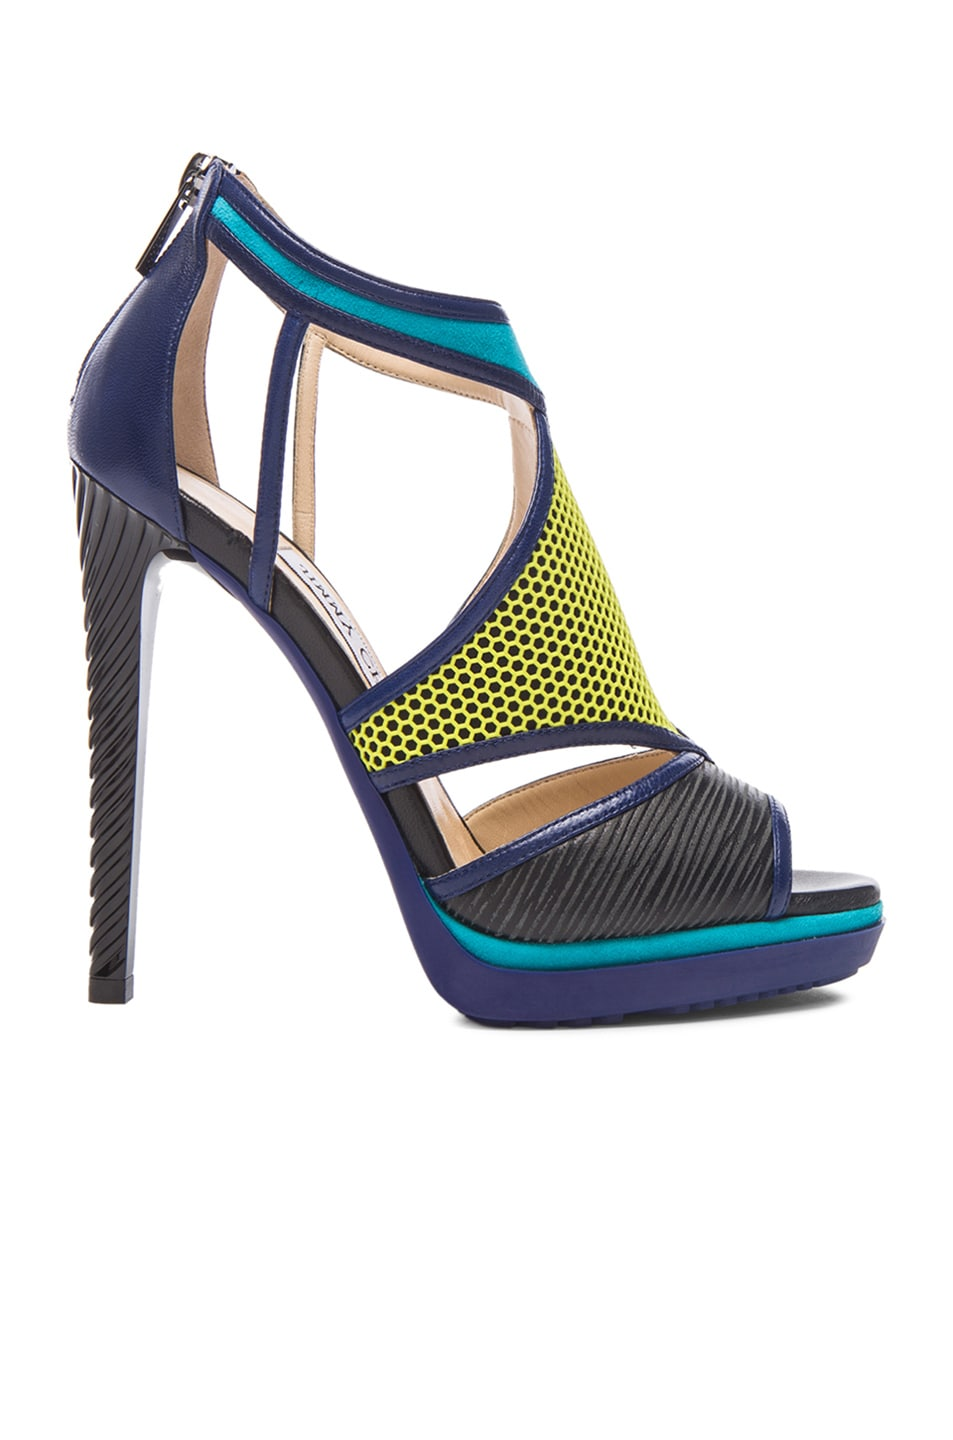 Image 1 of Jimmy Choo Lythe Leather Heels in Acid Yellow, Black & Turquoise